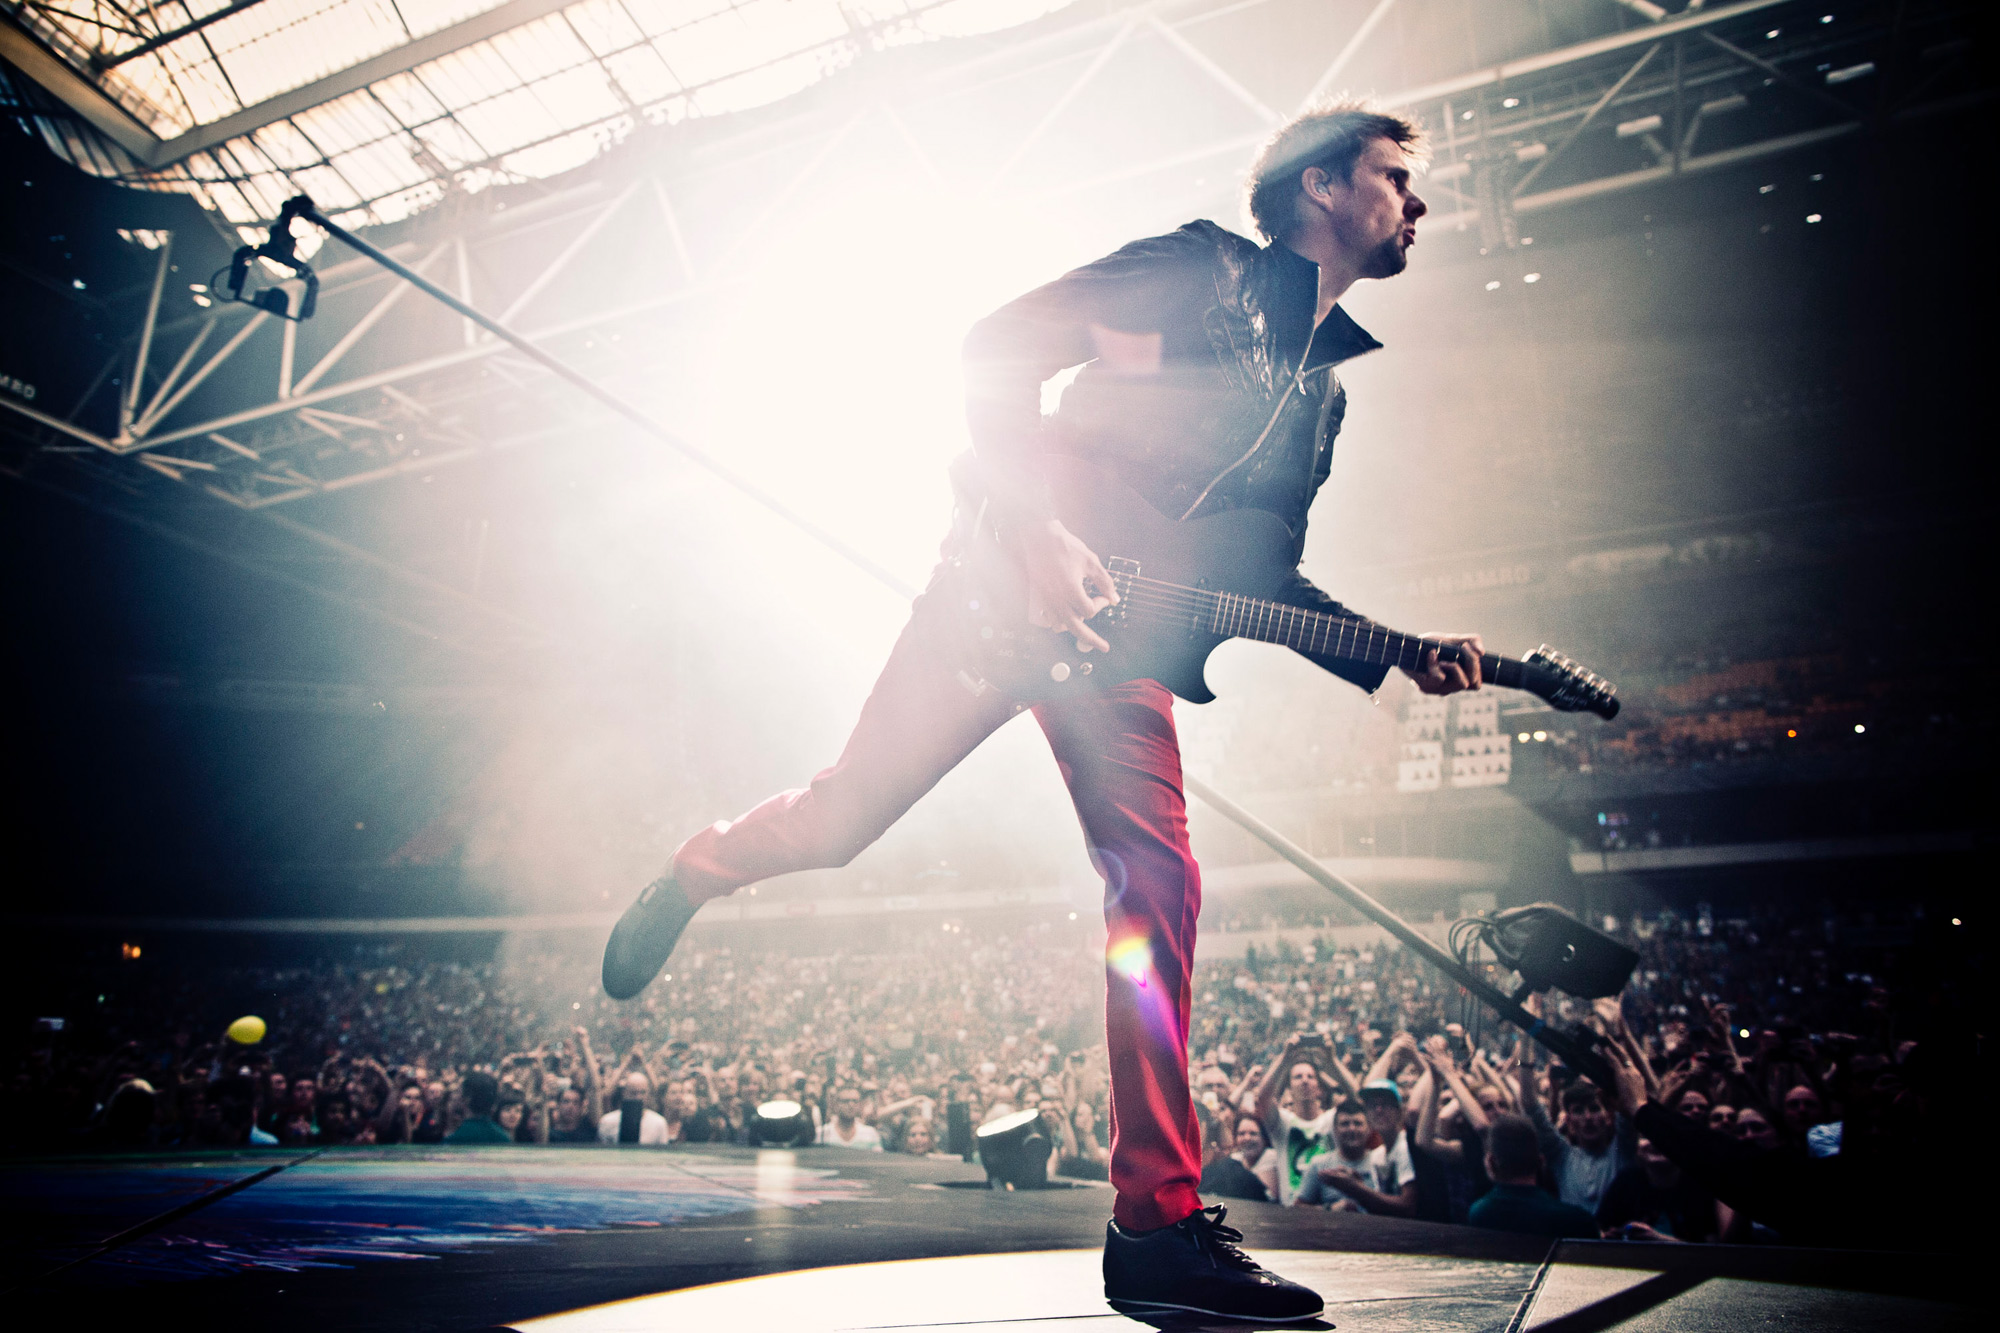 Just how soon could Muse's new material drop?